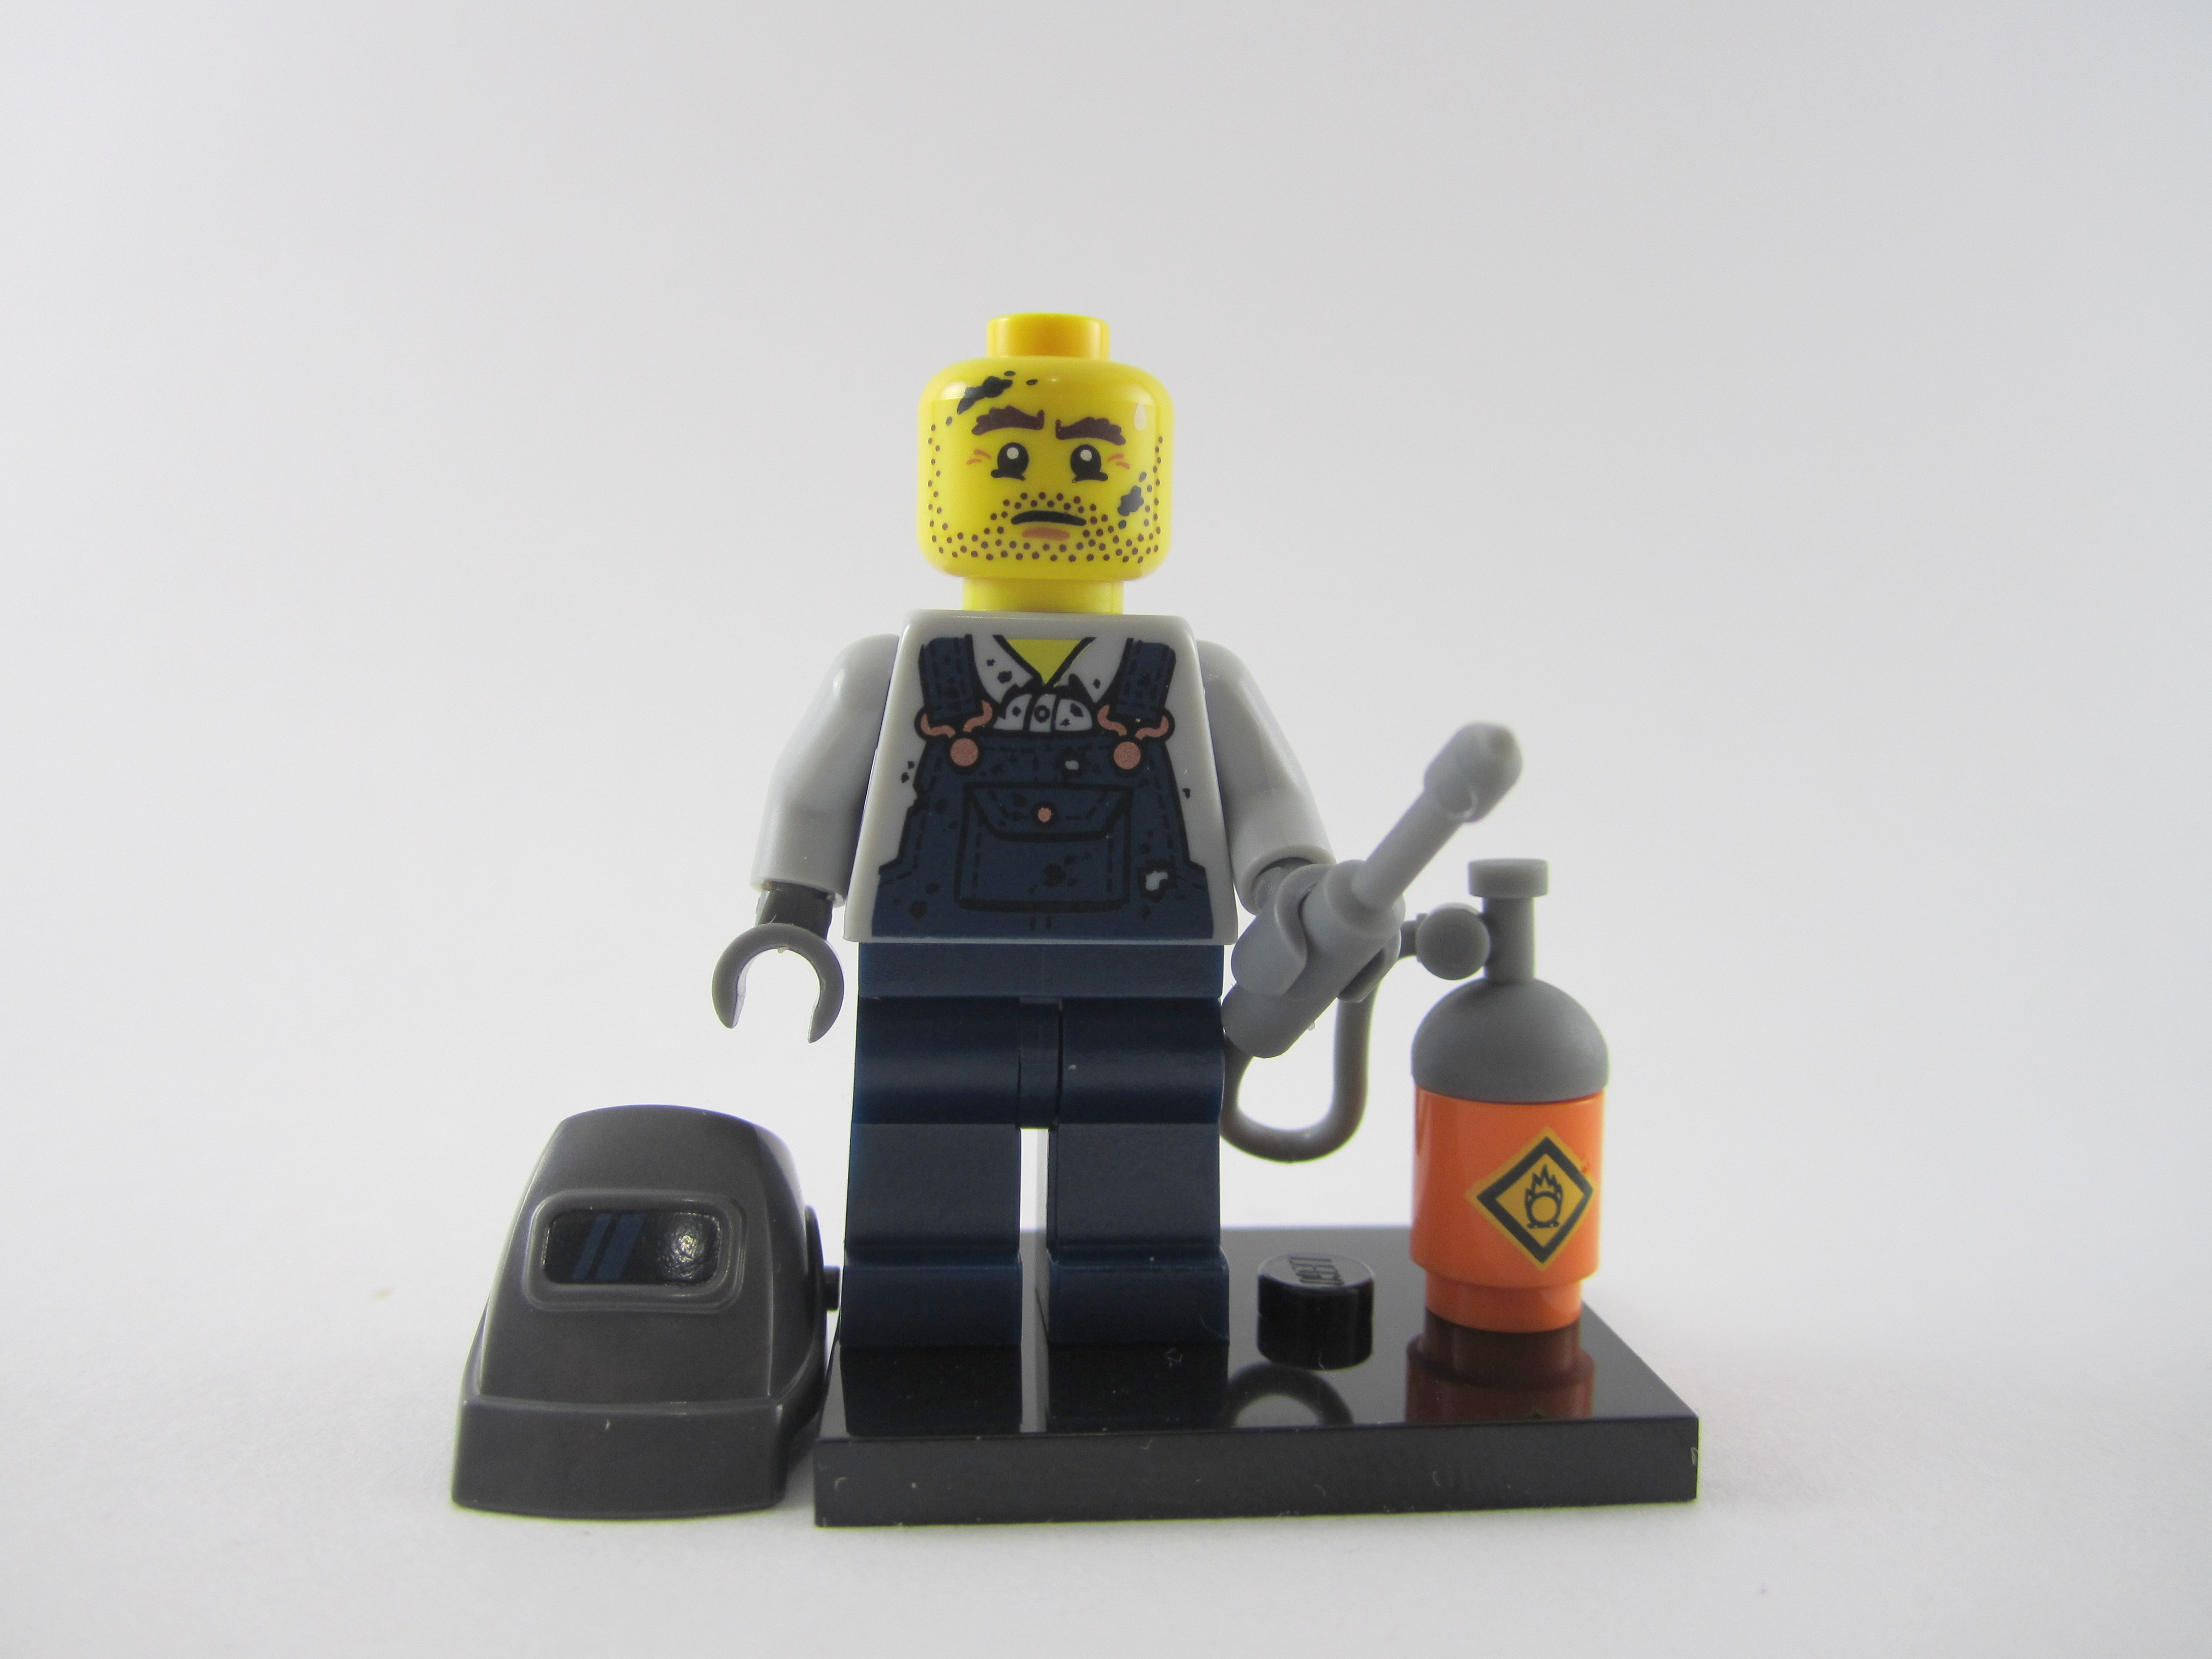 LEGO-MINIFIGURES SERIES 11 X 1 HEAD  FOR THE WELDER FROM  SERIES 11 PARTS